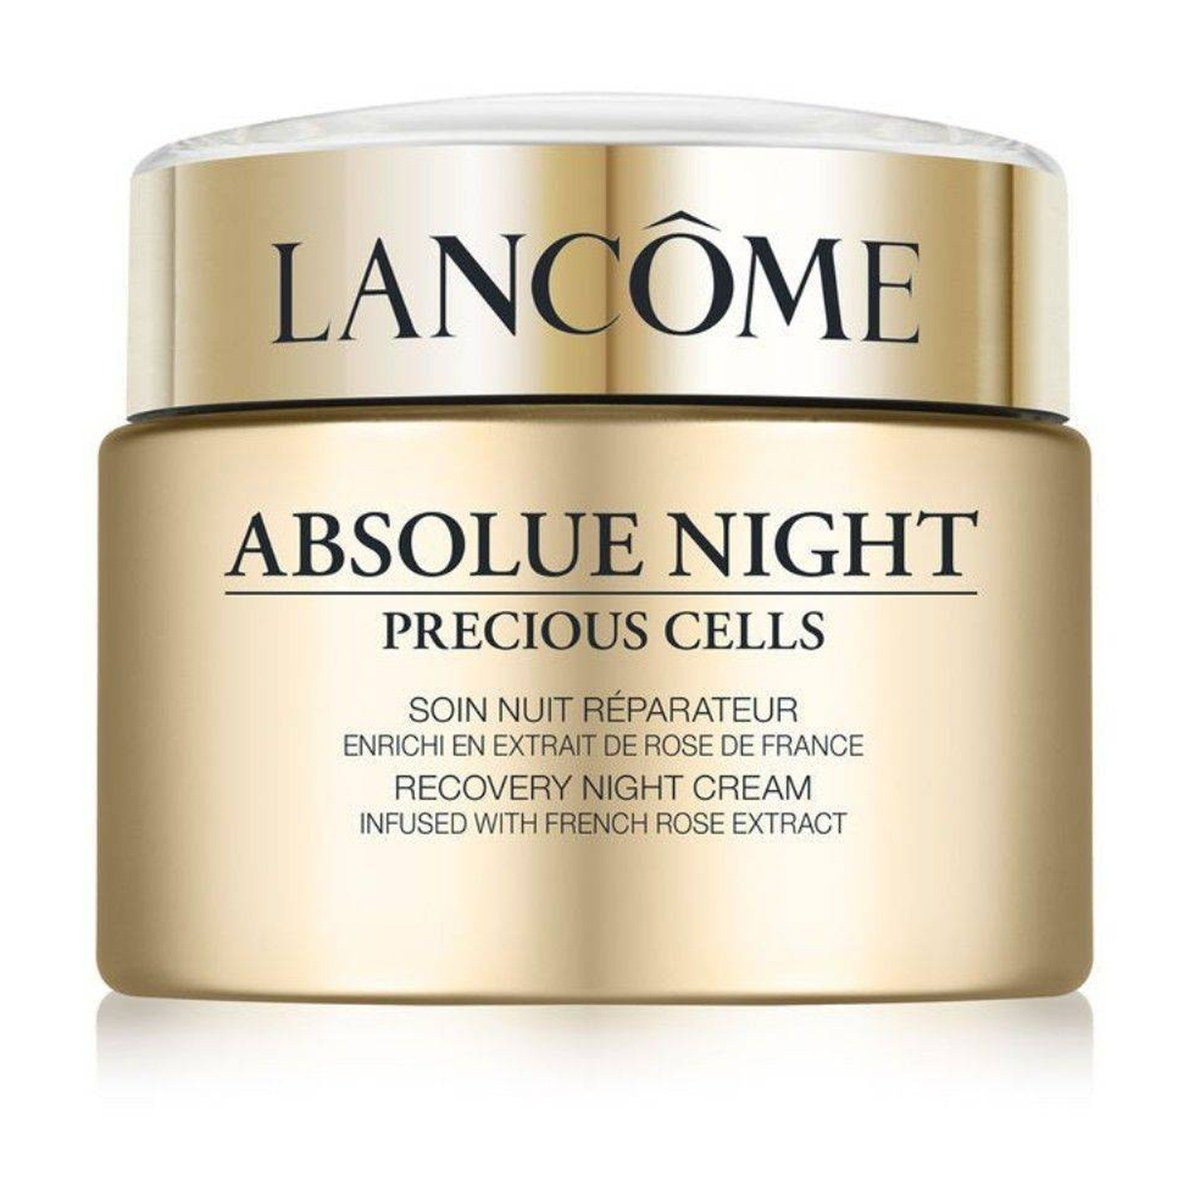 Creme Facial Lancôme Absolue Night Precious Cells 50ml